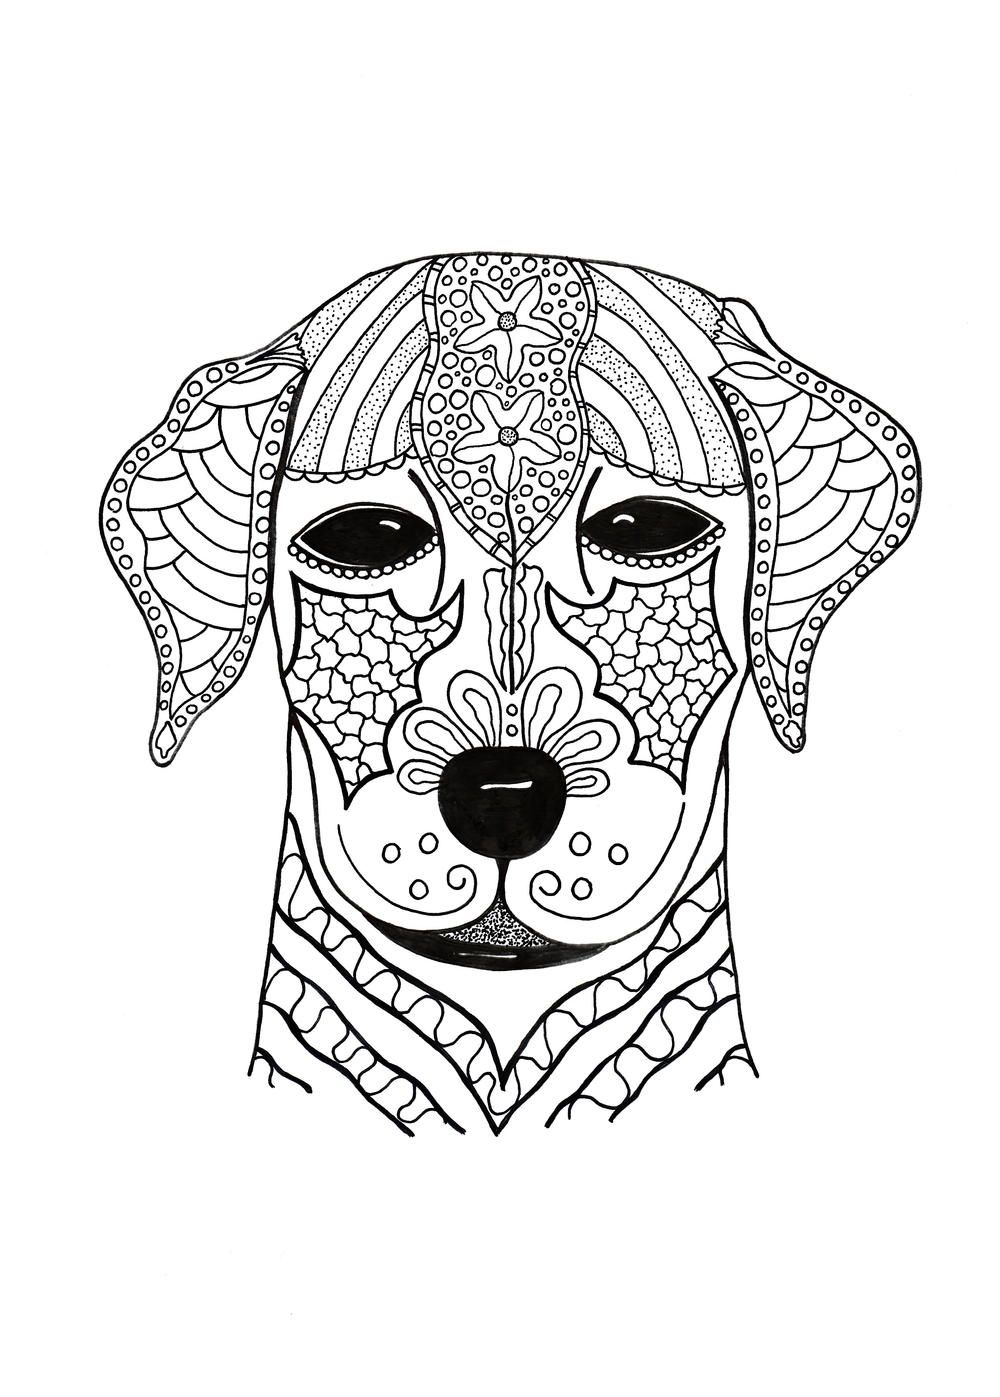 I Woof You A FREE Adult Coloring Page To Download And Enjoy FaveCrafter